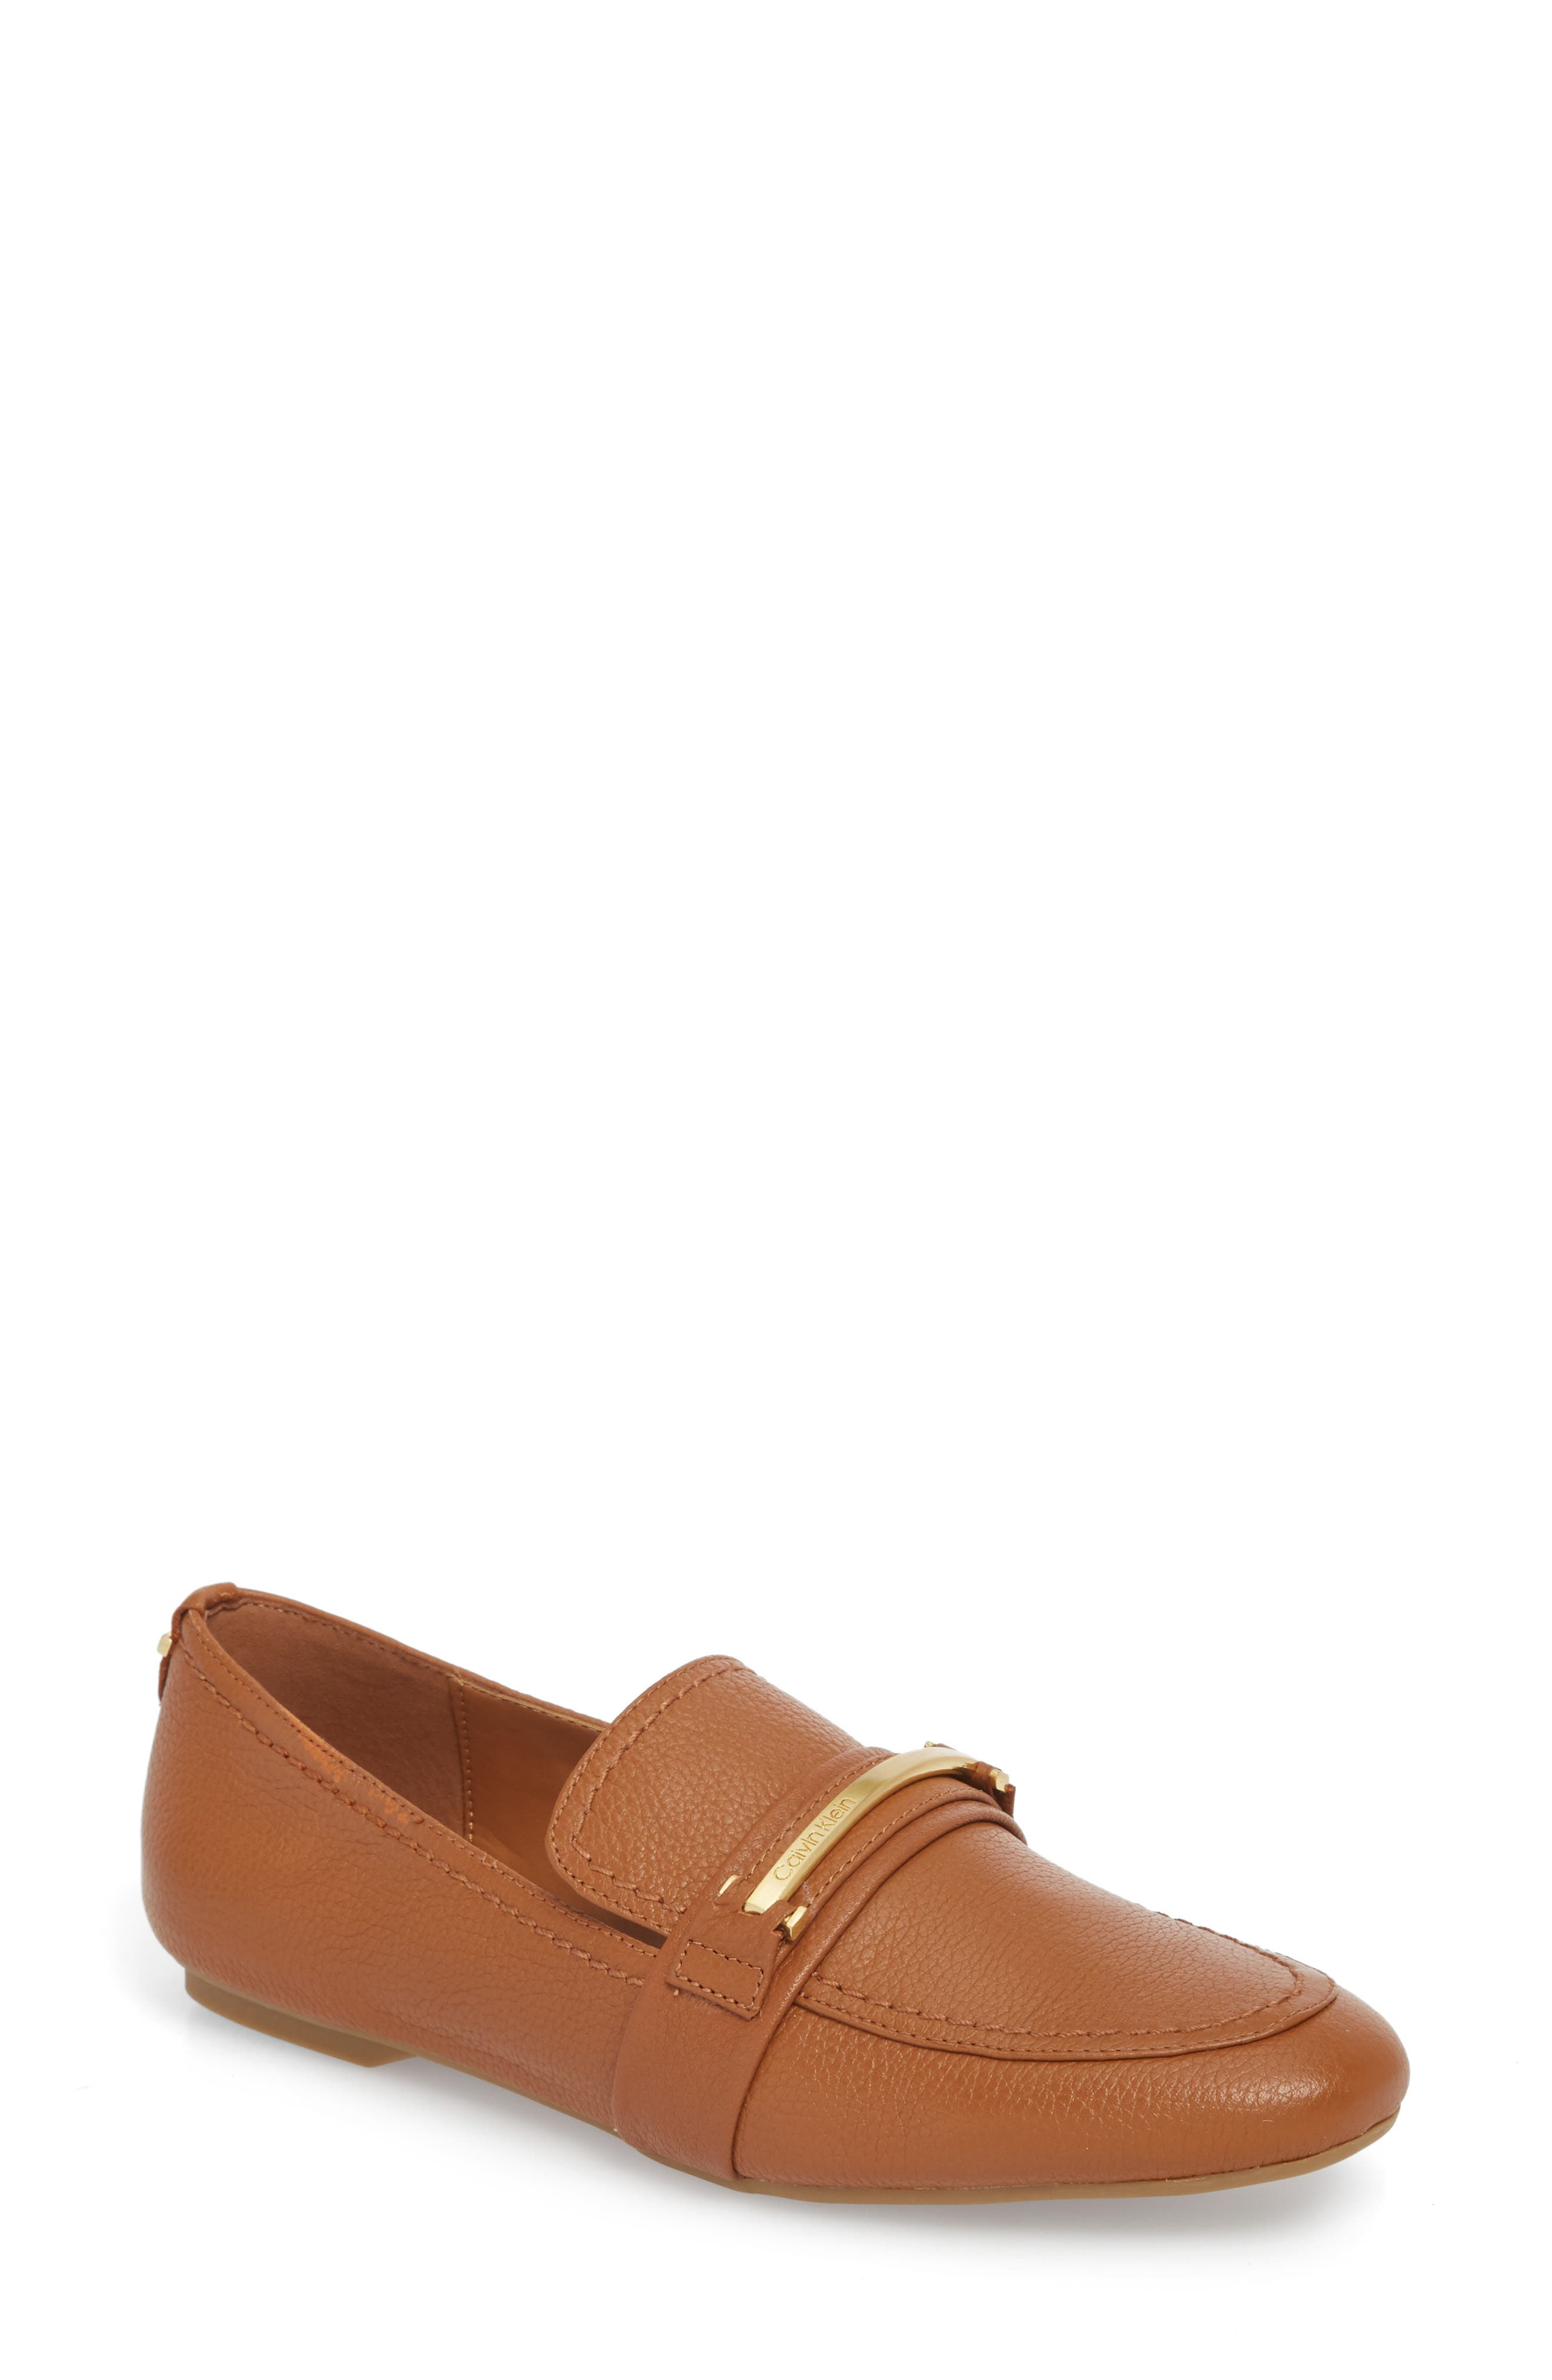 Orianna Loafer,                             Main thumbnail 1, color,                             COGNAC LEATHER